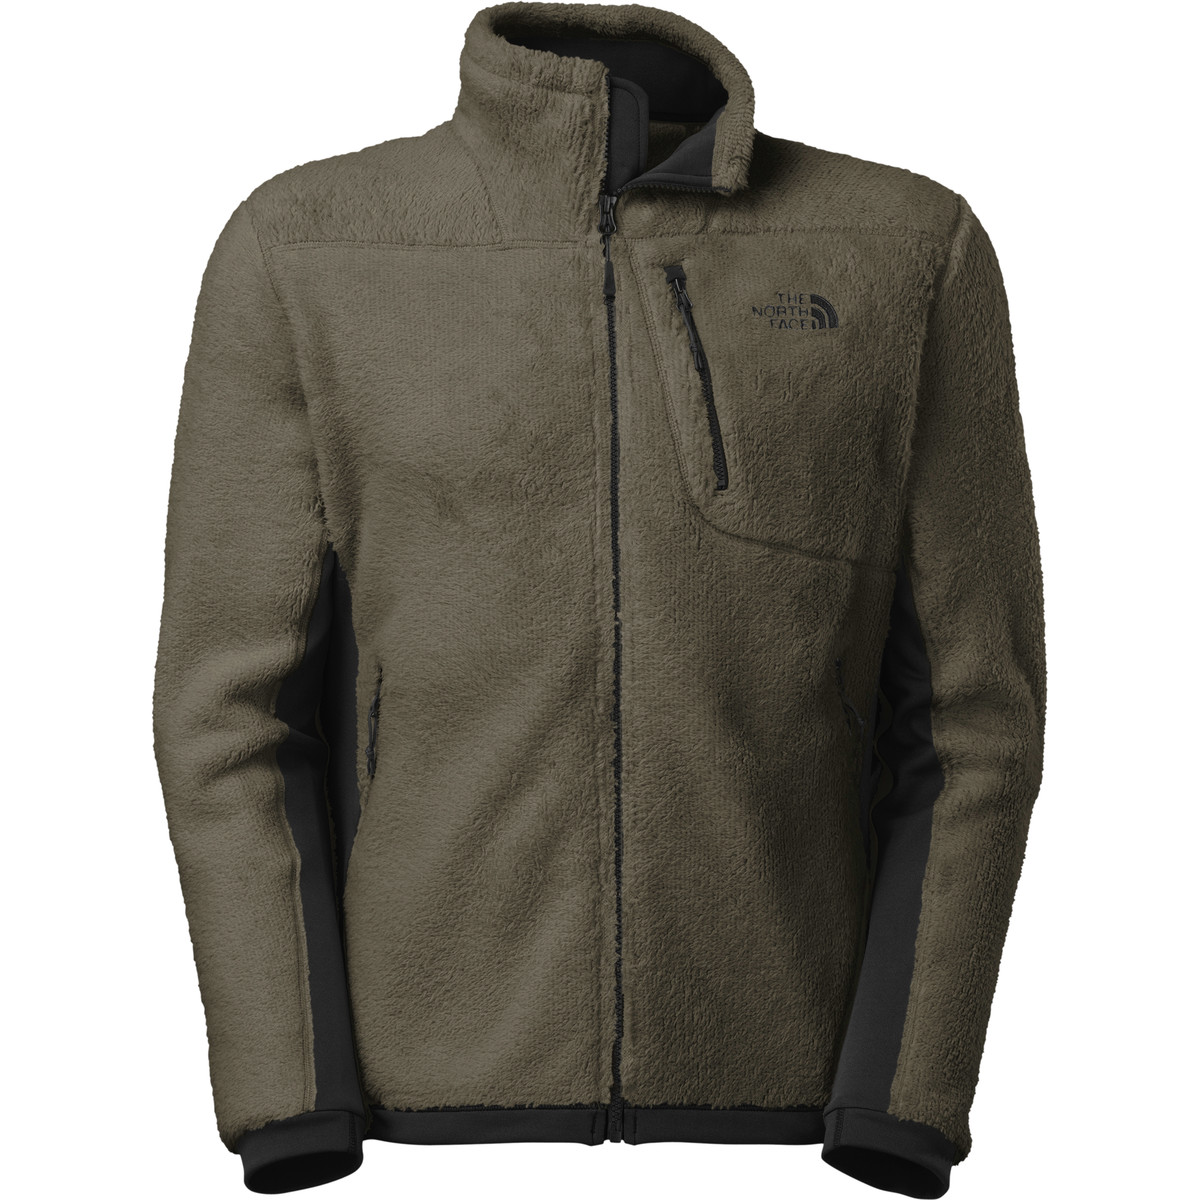 The North Face Grizzly 2 Jacket